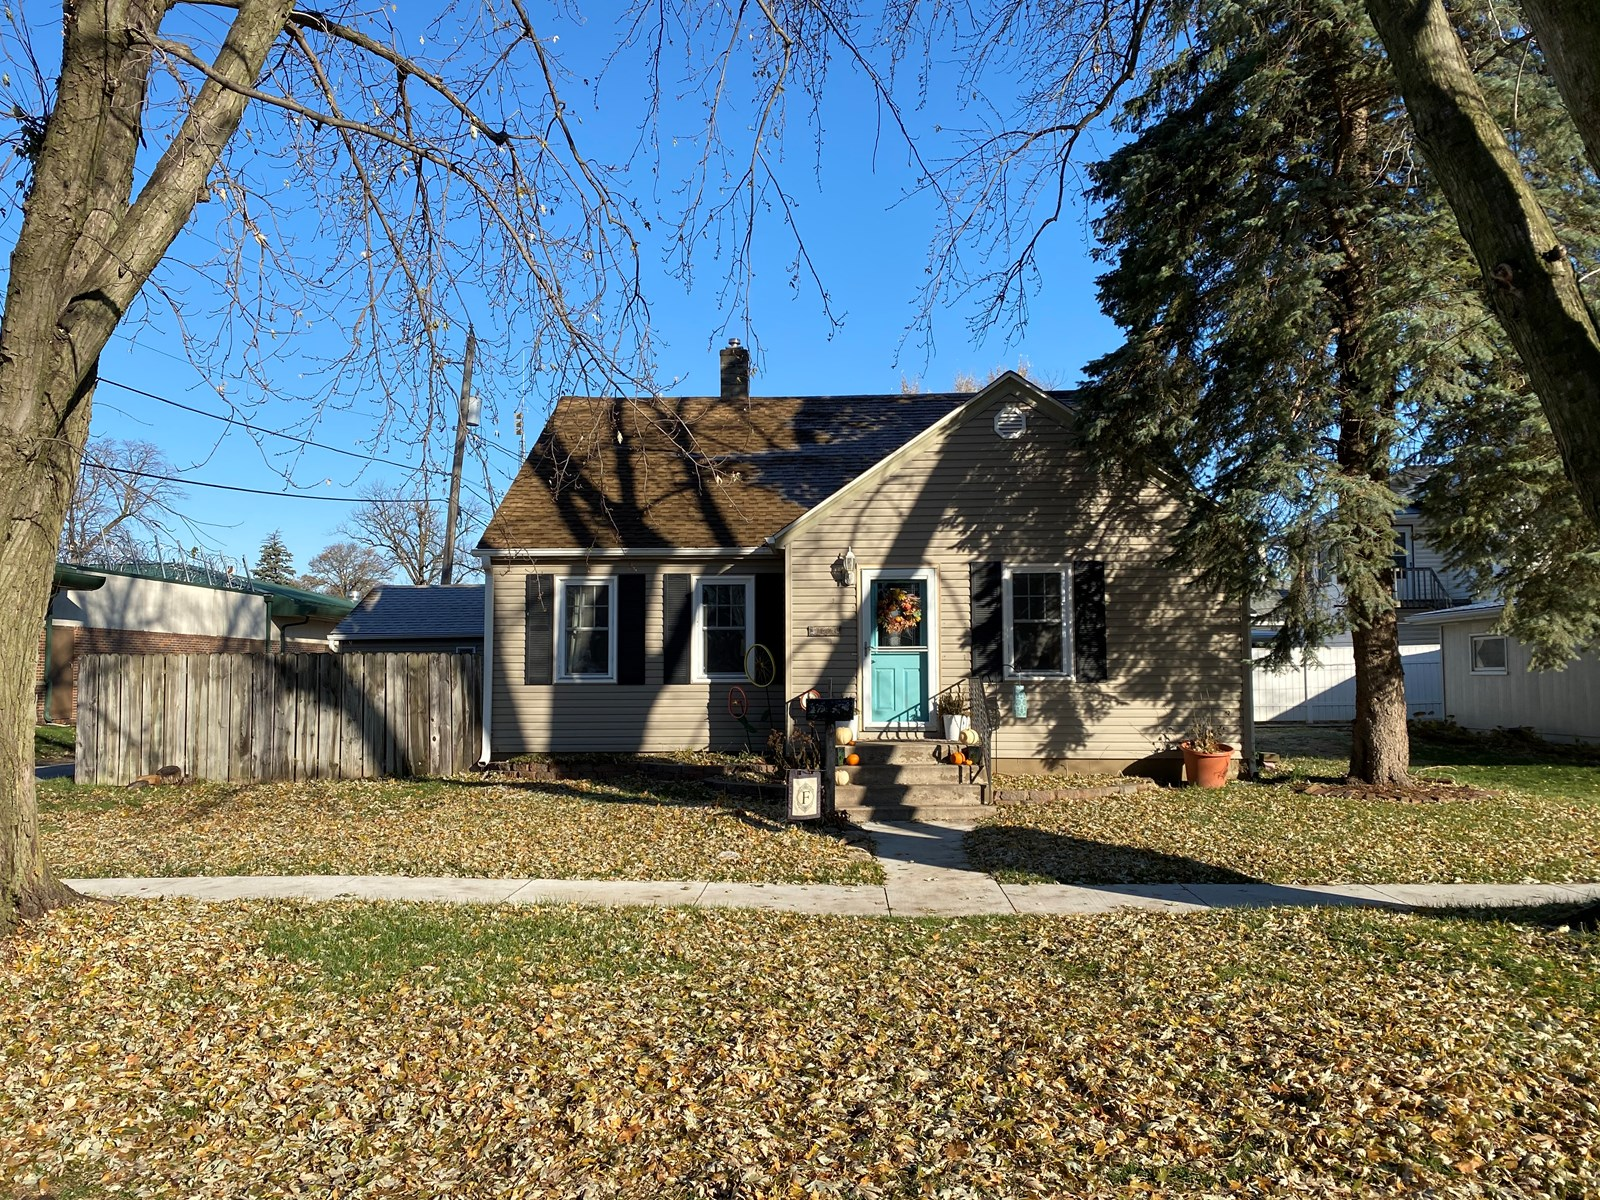 3BR For Sale, Logan, IA, Harrison Co. Wood floors